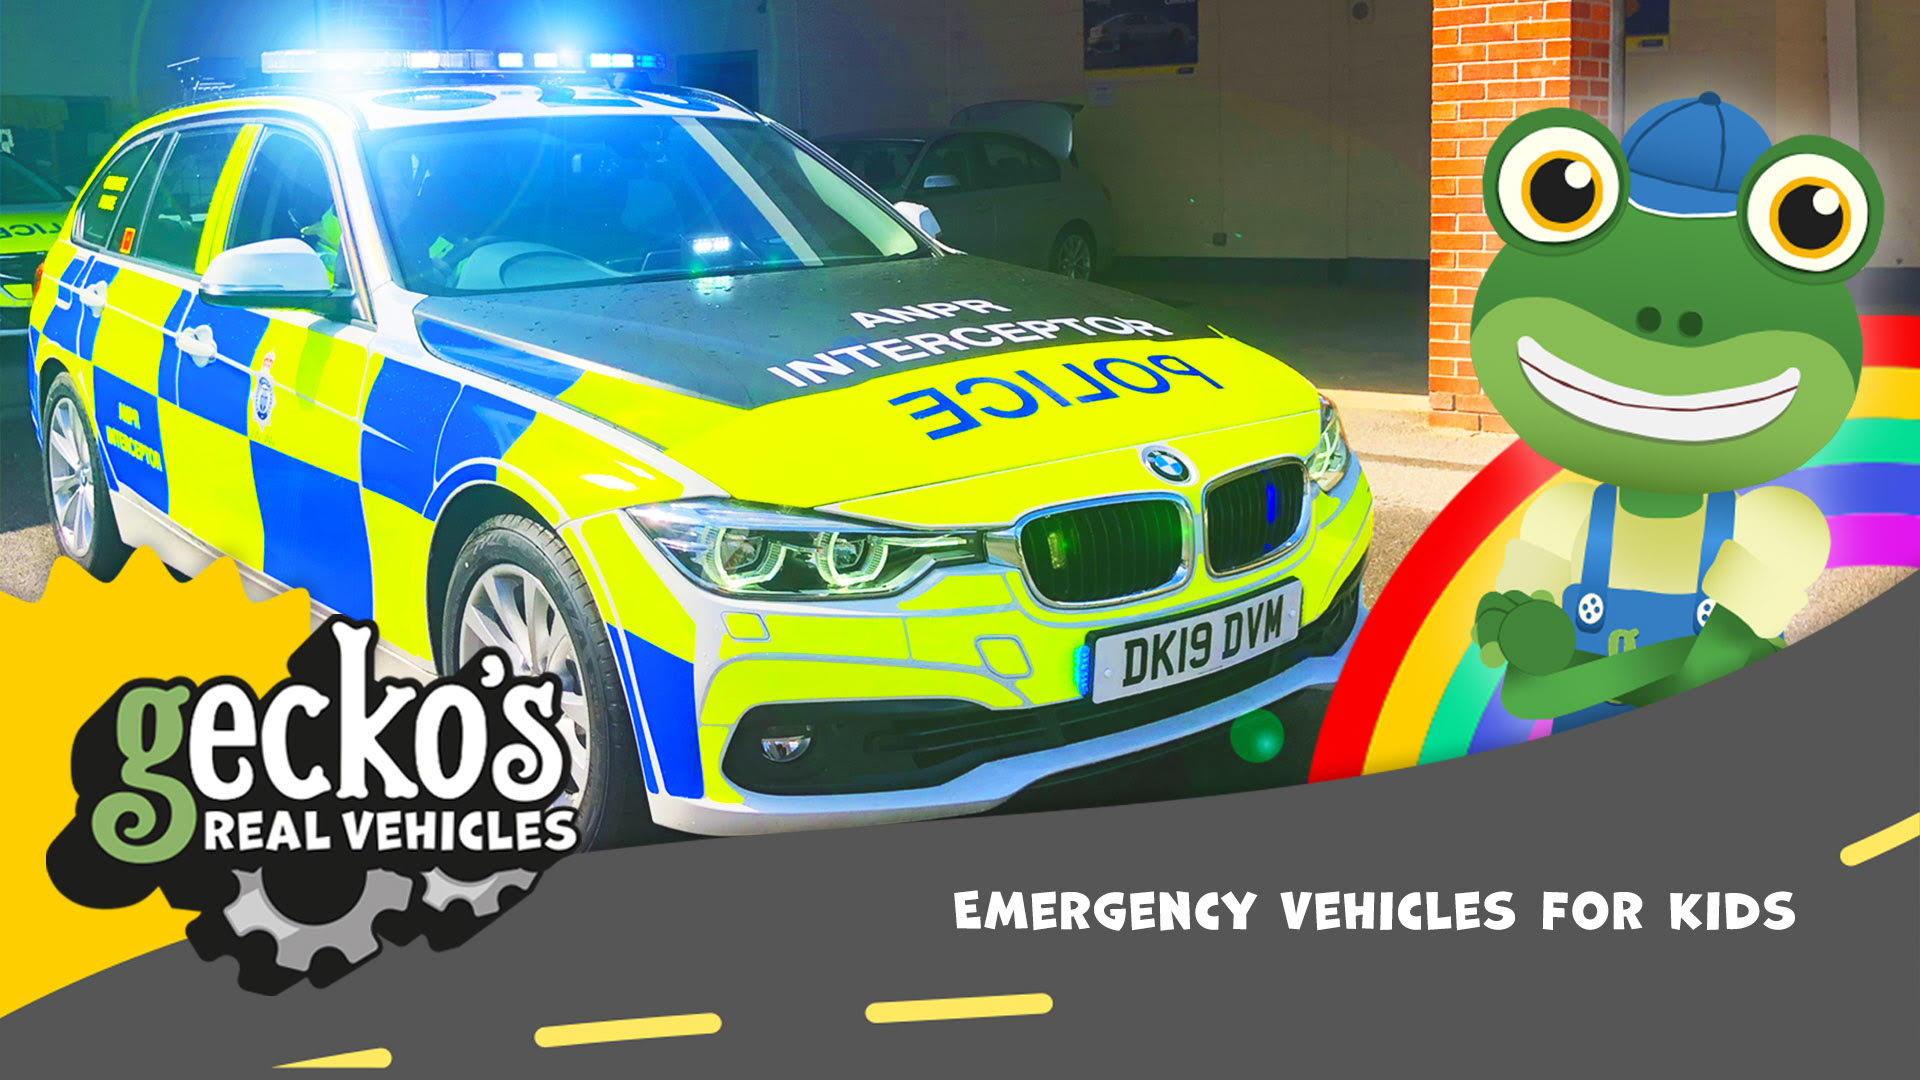 Emergency Vehicles for Kids - Gecko's Real Vehicles